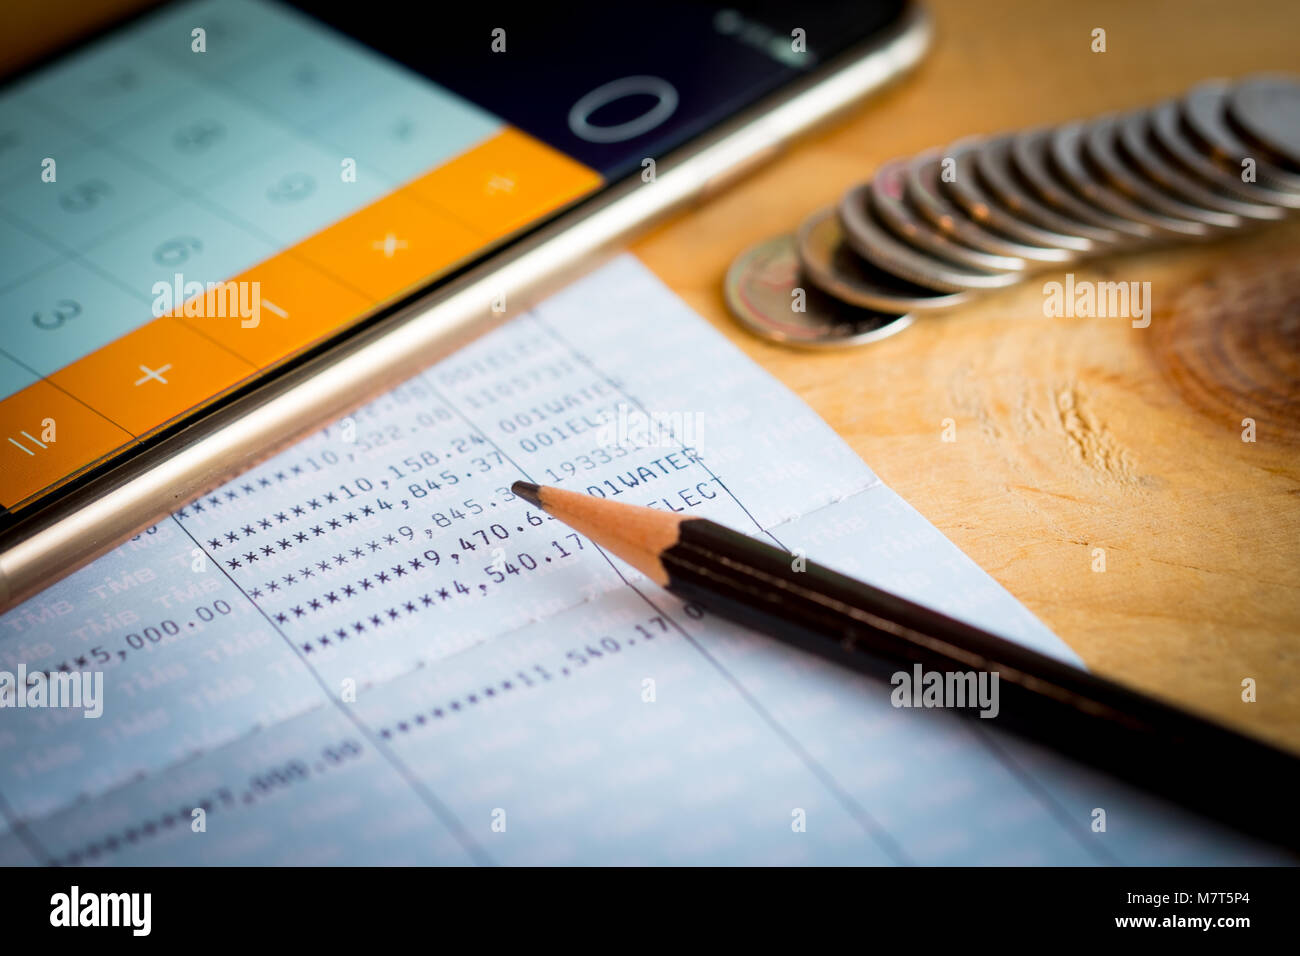 Savings Account Bank Book, Pencil And Smartphone Used As Calculator On  Wooden Table